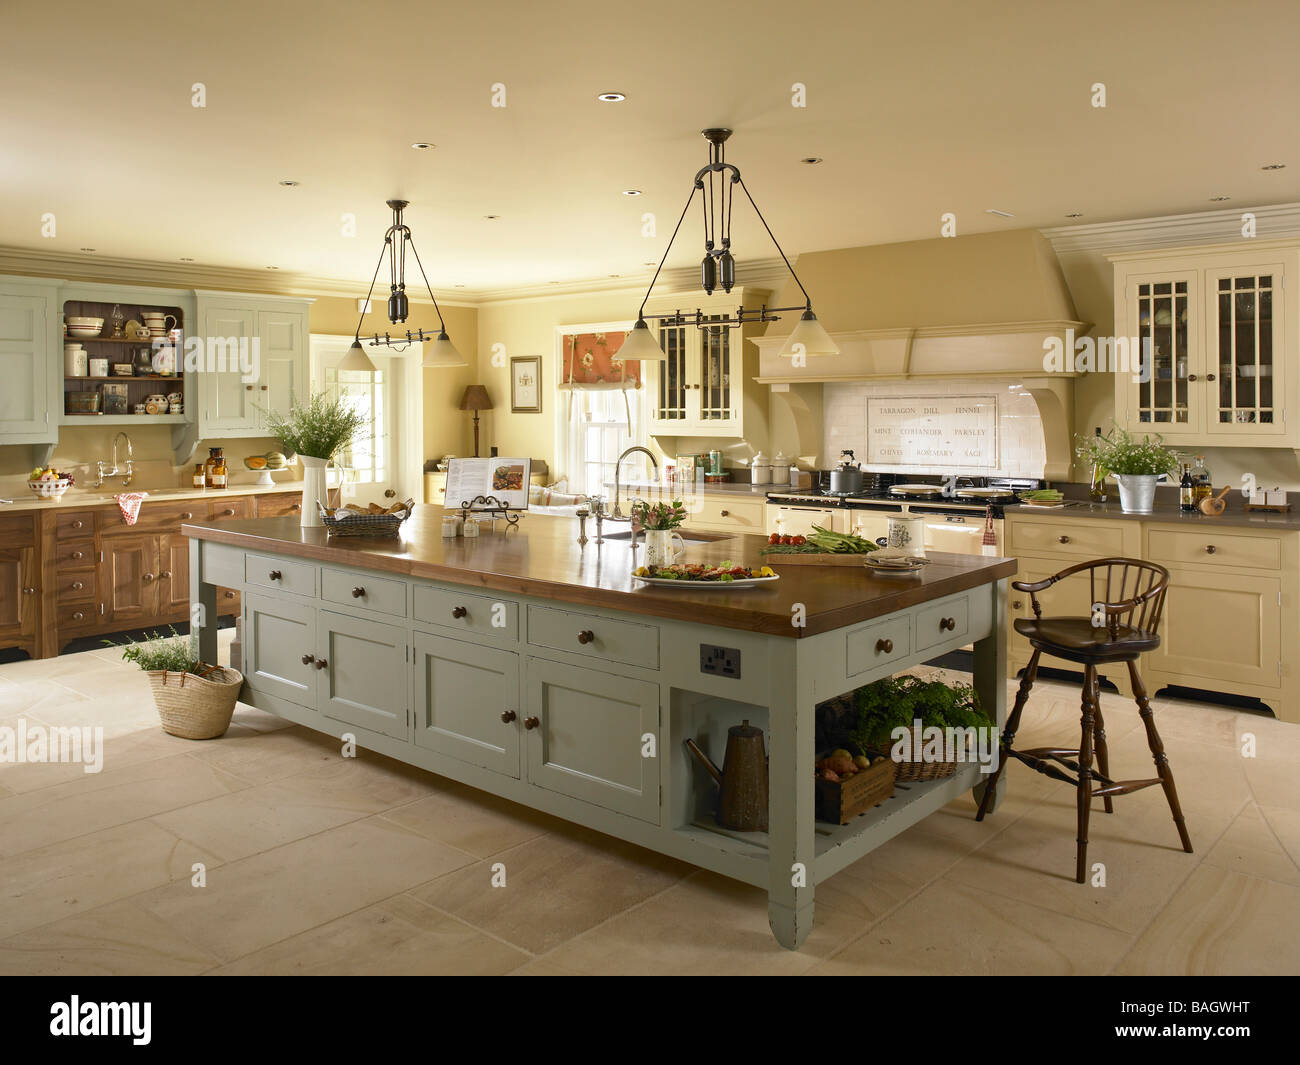 Where To Buy A Large Kitchen Island